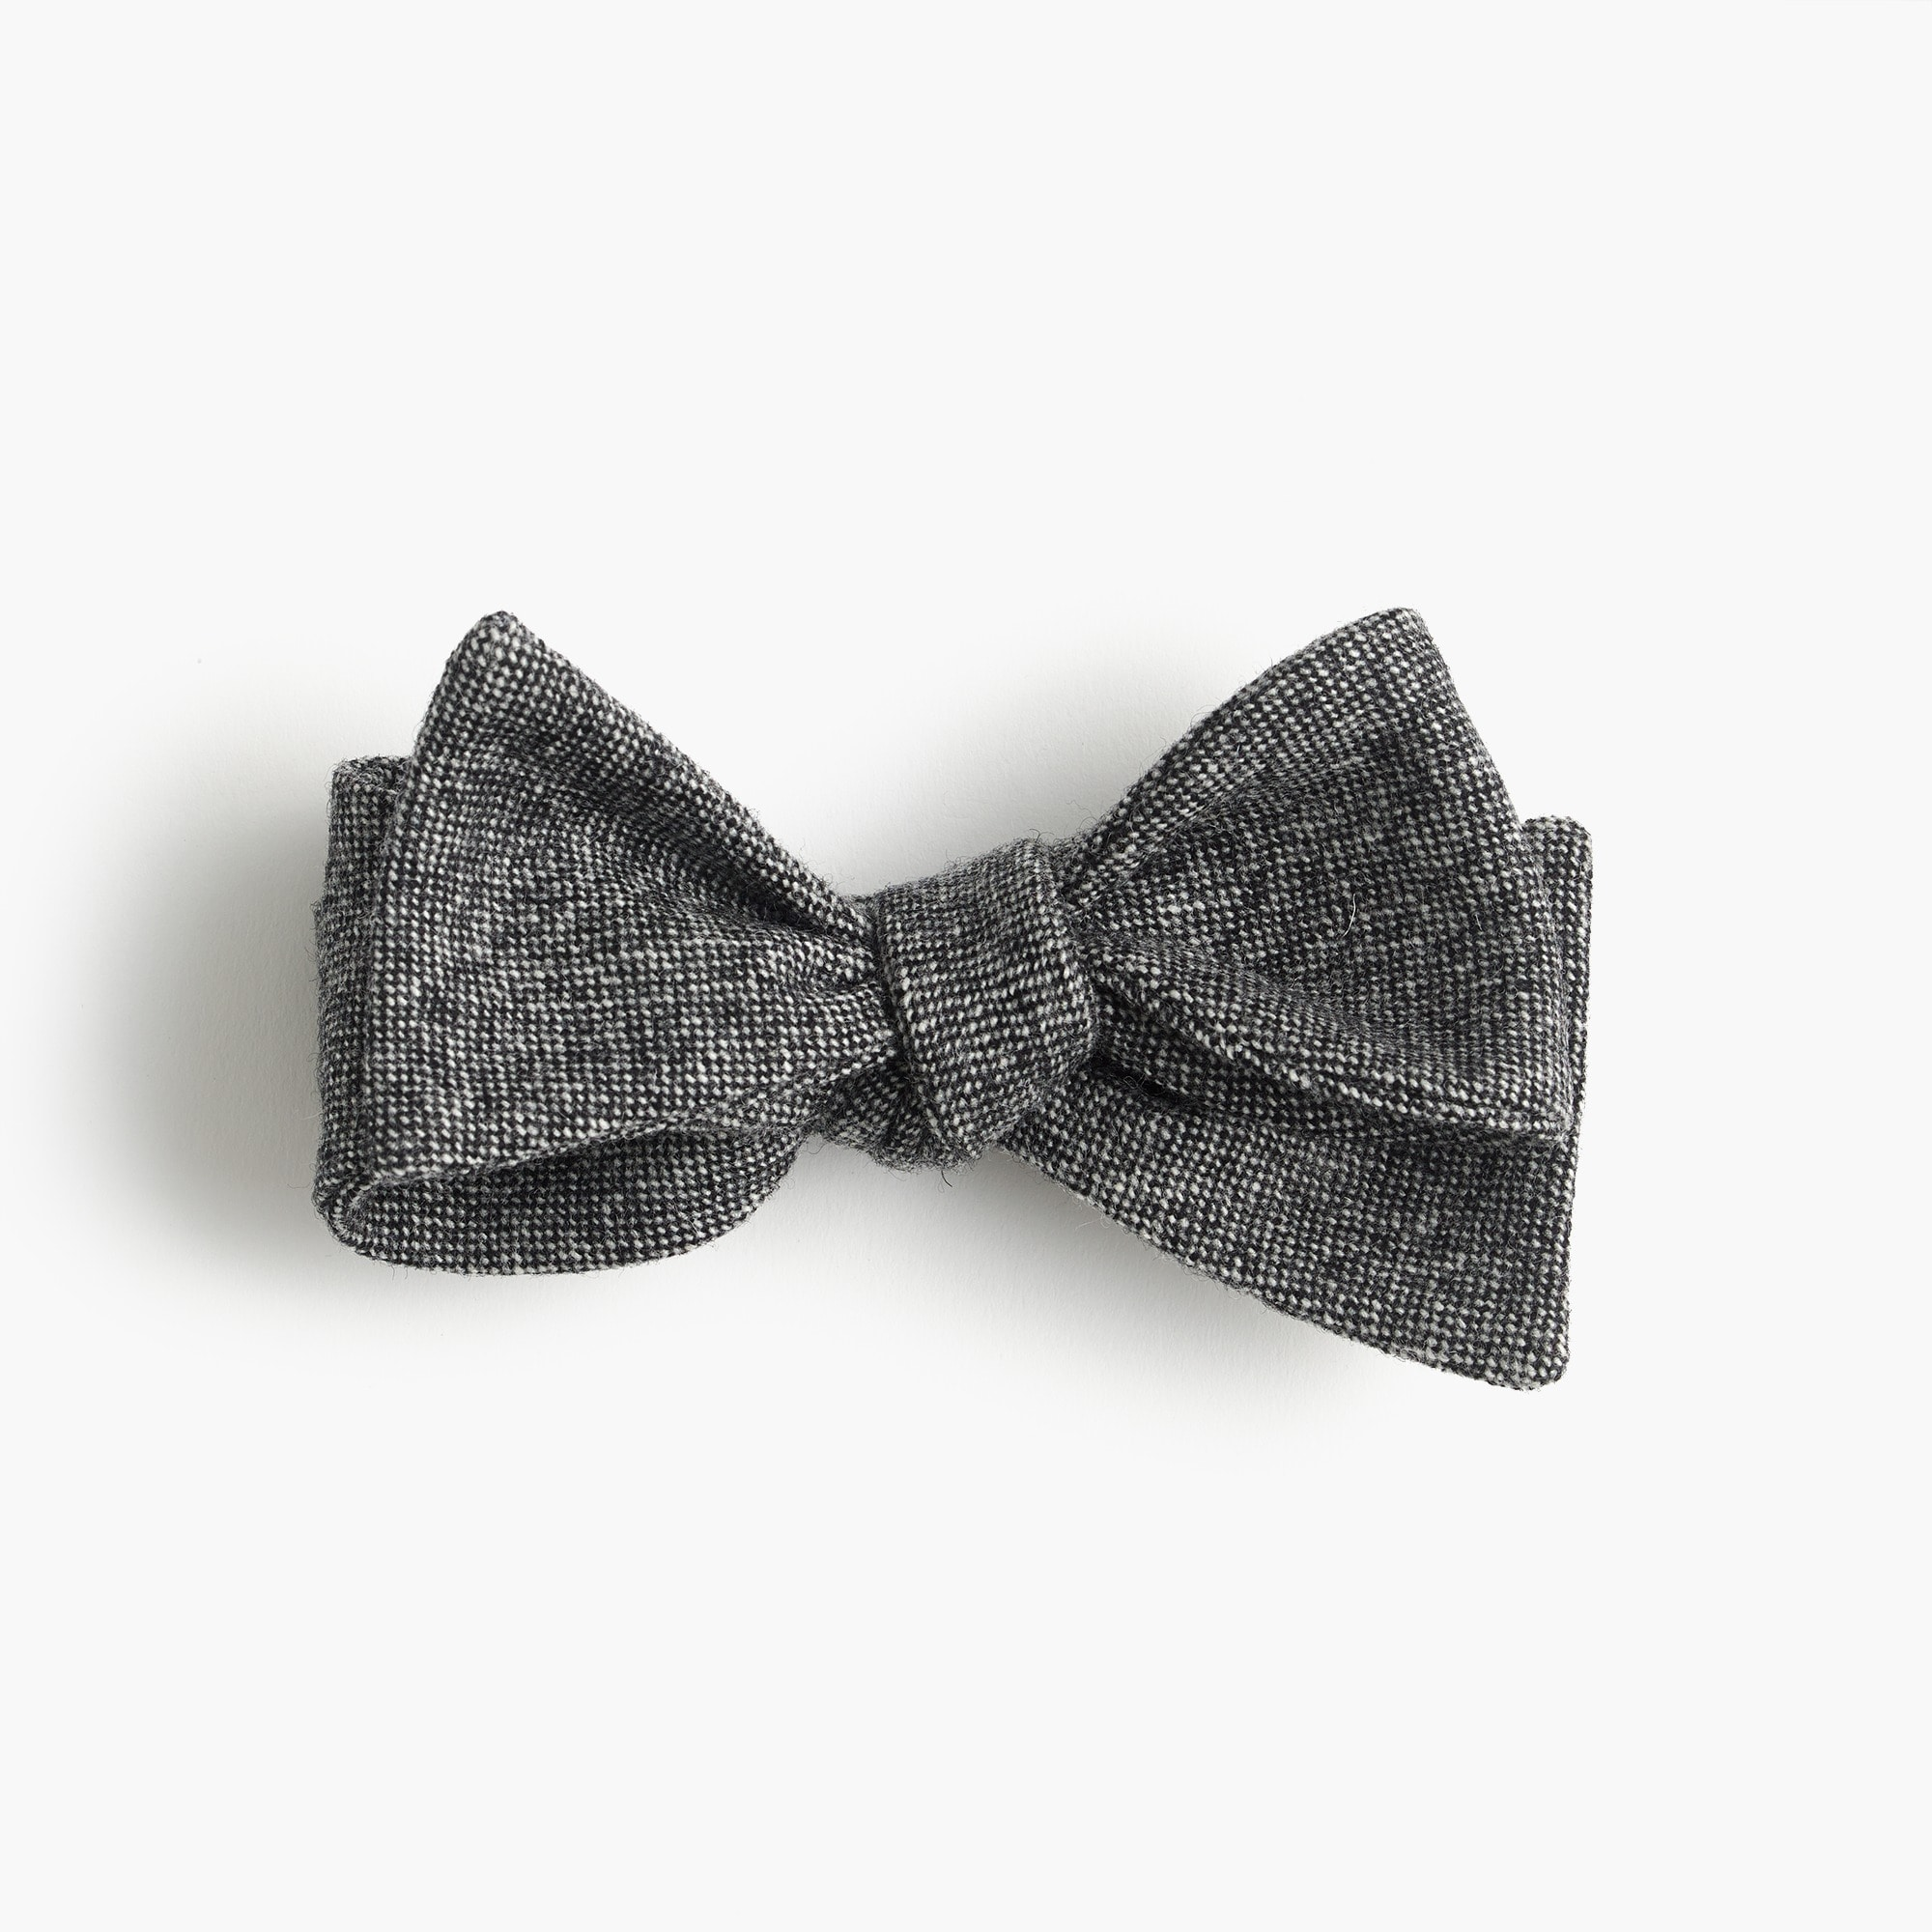 wool bow tie in grey : men bow ties